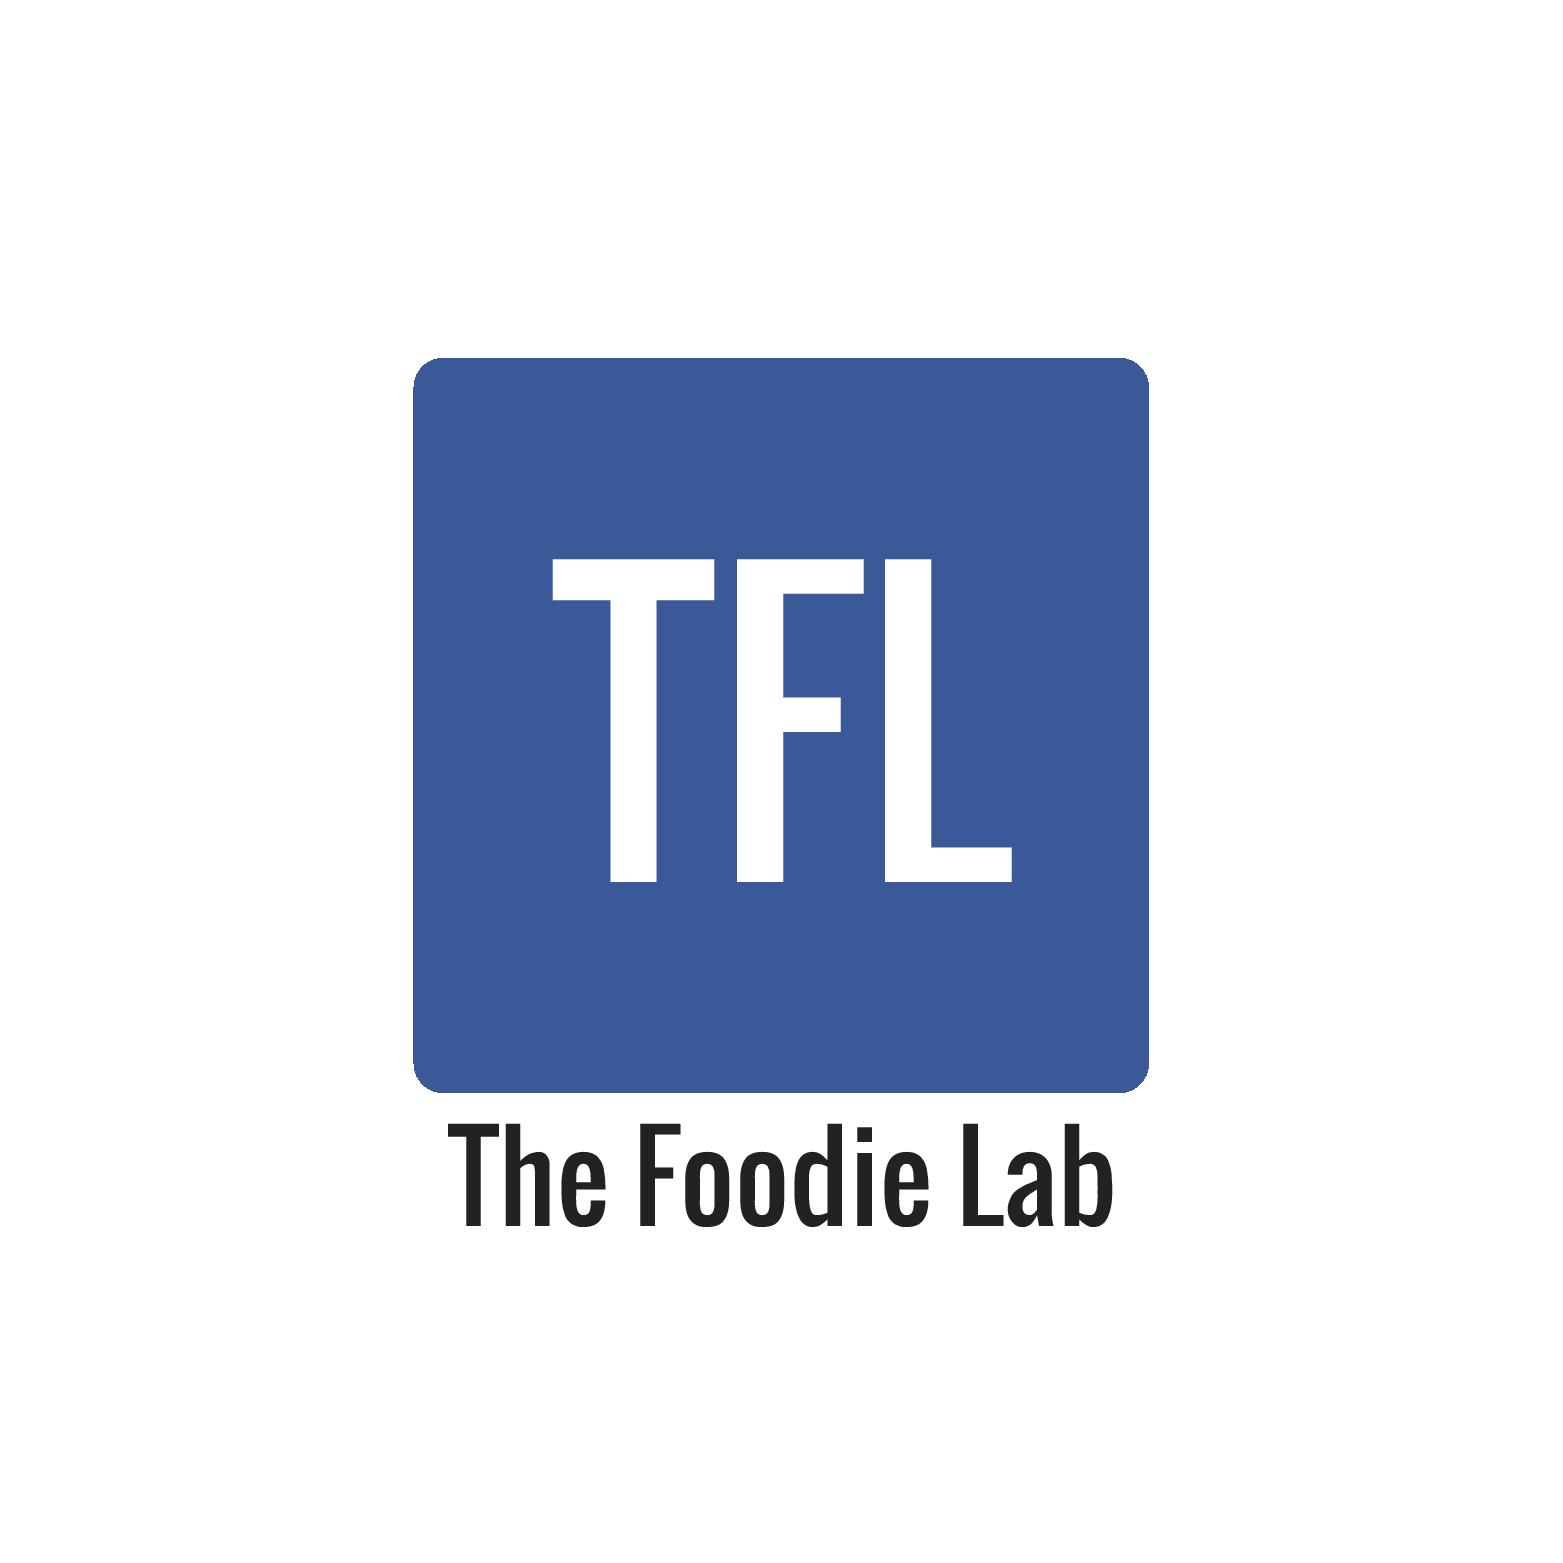 The Foodie Lab LLP